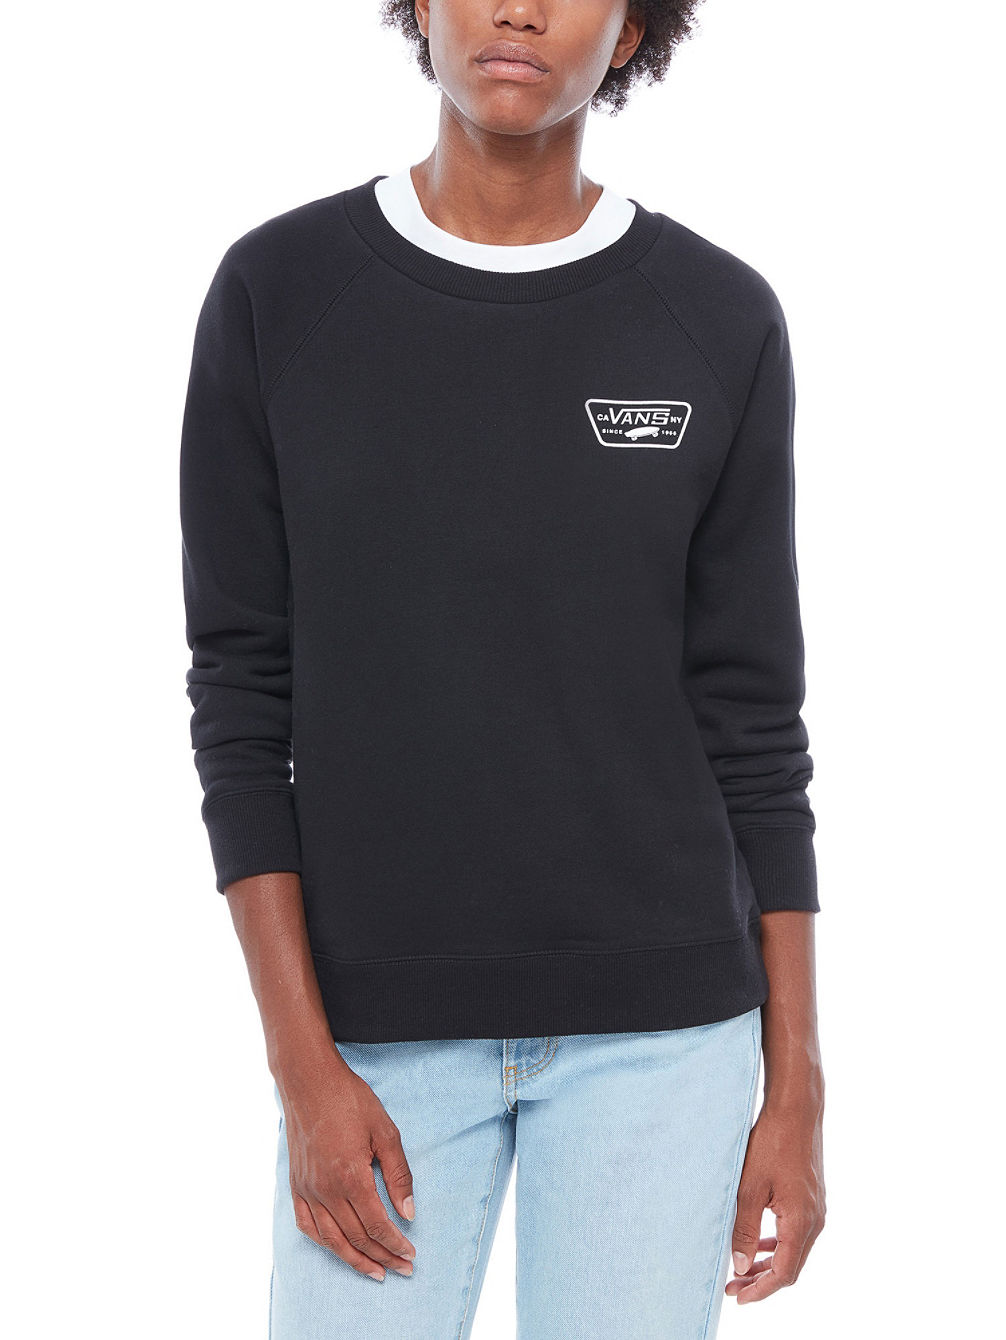 Full Patch Raglan Crew Sweater